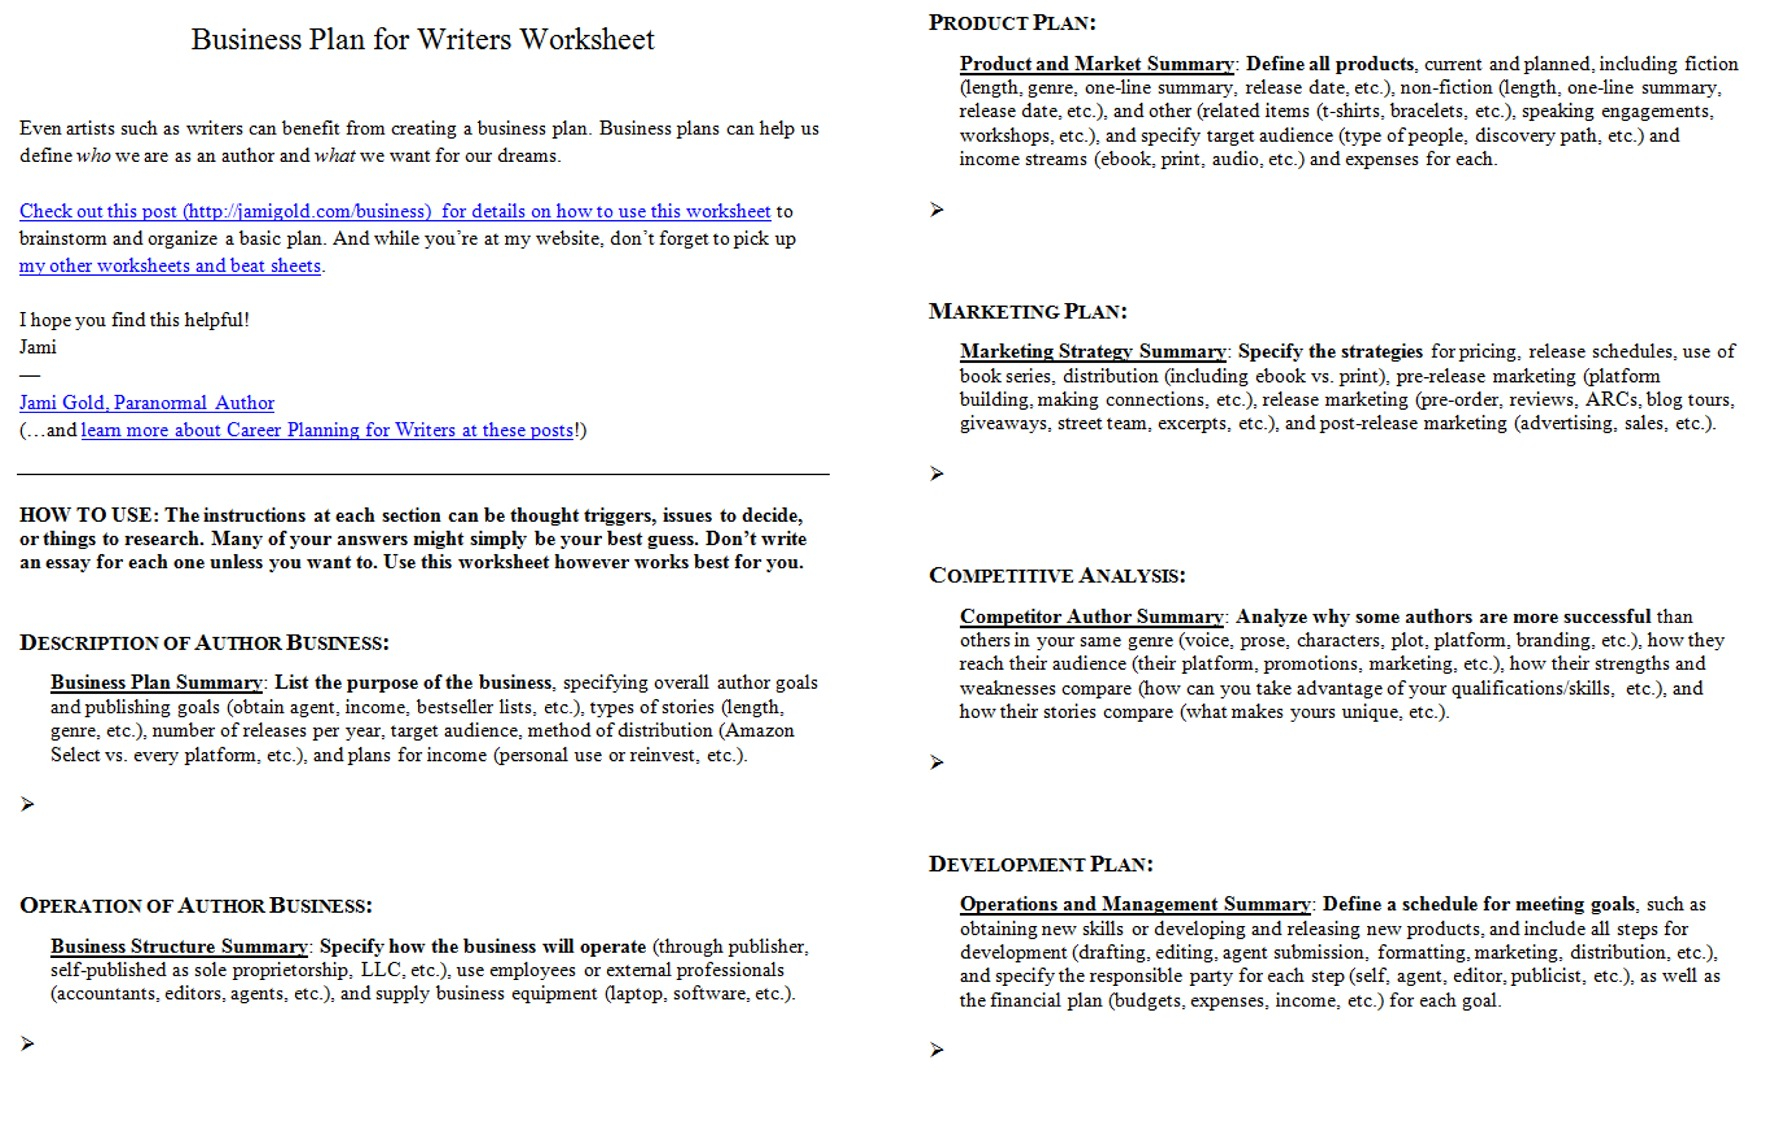 Proatmealus  Ravishing Worksheets For Writers  Jami Gold Paranormal Author With Extraordinary Screen Shot Of Both Pages Of The Business Plan For Writers Worksheet With Nice Multiplication Table Worksheet Printable Also Learning French Worksheets In Addition Long Divison Worksheets And Words Worksheets As Well As Single Digit Math Worksheets Additionally Converting Fraction To Decimal Worksheet From Jamigoldcom With Proatmealus  Extraordinary Worksheets For Writers  Jami Gold Paranormal Author With Nice Screen Shot Of Both Pages Of The Business Plan For Writers Worksheet And Ravishing Multiplication Table Worksheet Printable Also Learning French Worksheets In Addition Long Divison Worksheets From Jamigoldcom